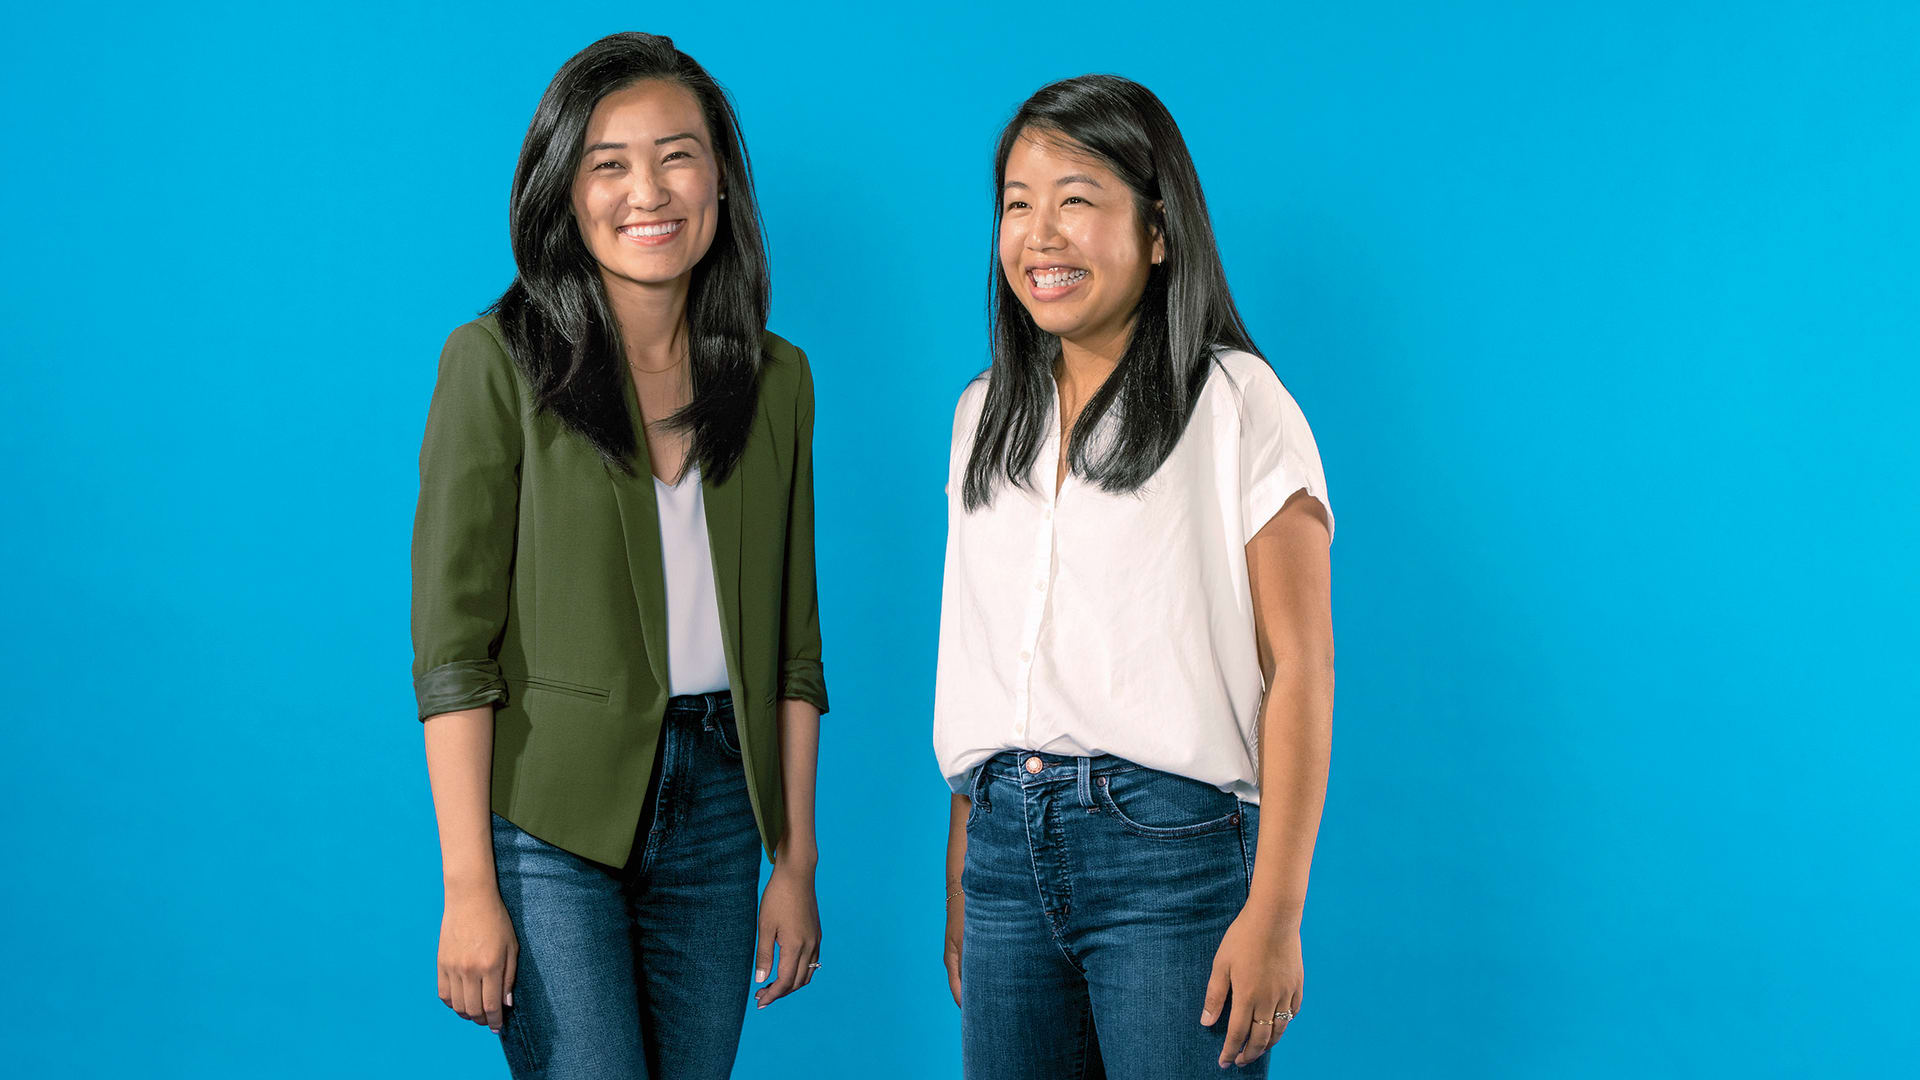 Michelle Zhu (left) and Tammy Hsu run Huue, a startup developing sustainable textile dyes to replace the ecologically destructive colorants the fashion industry uses.